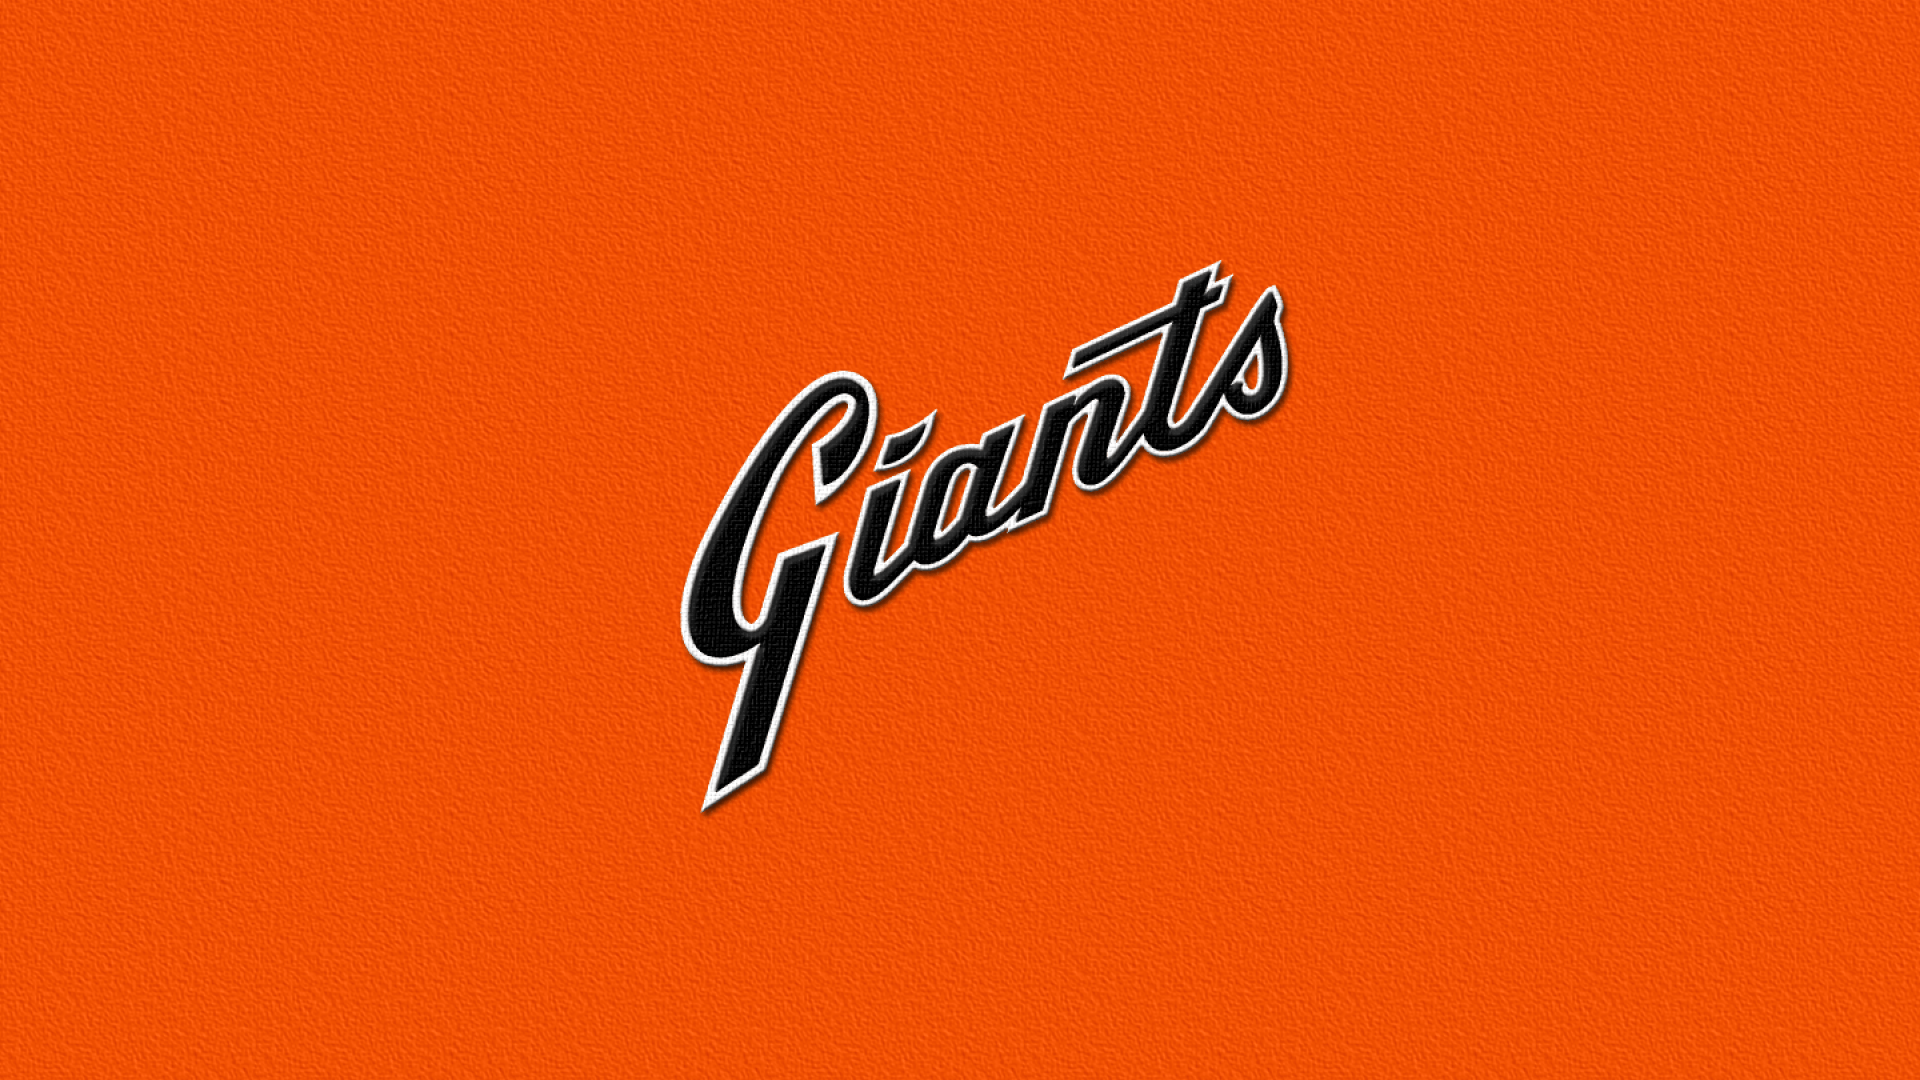 san francisco giants wallpaper iphone 4